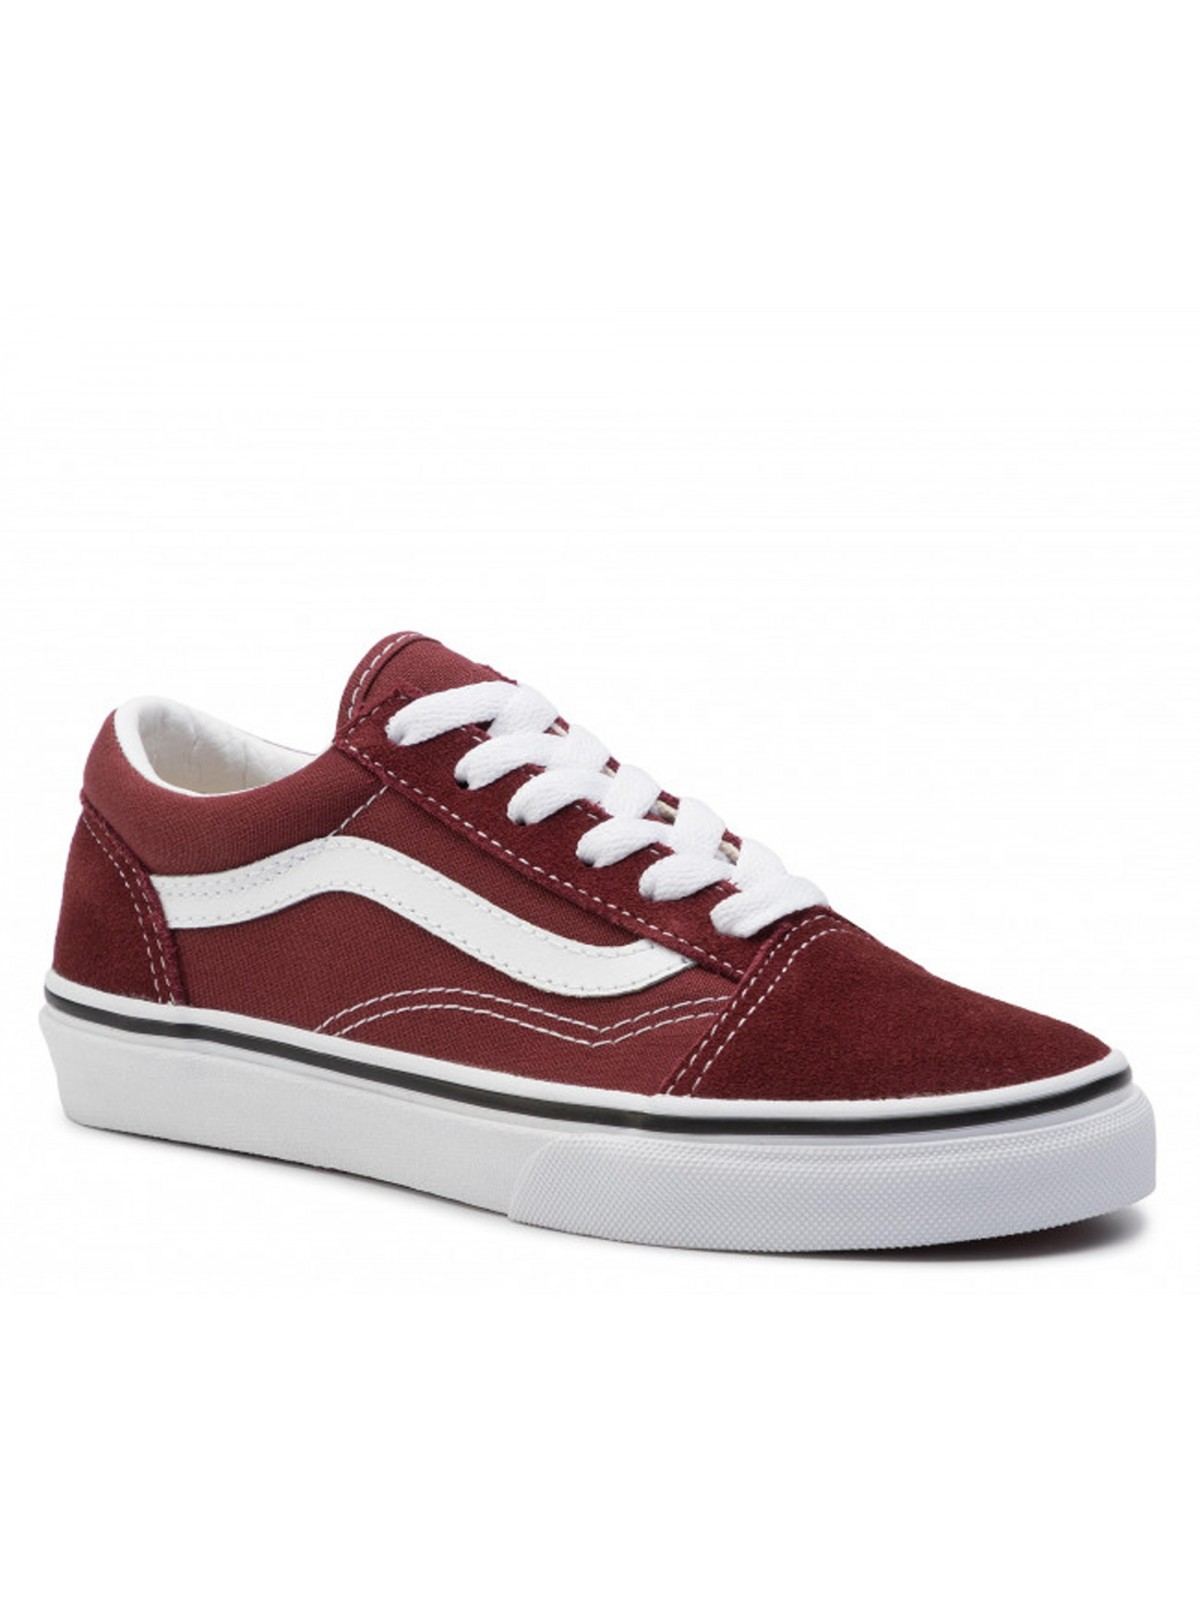 Vans Old Skool andorra (kids)